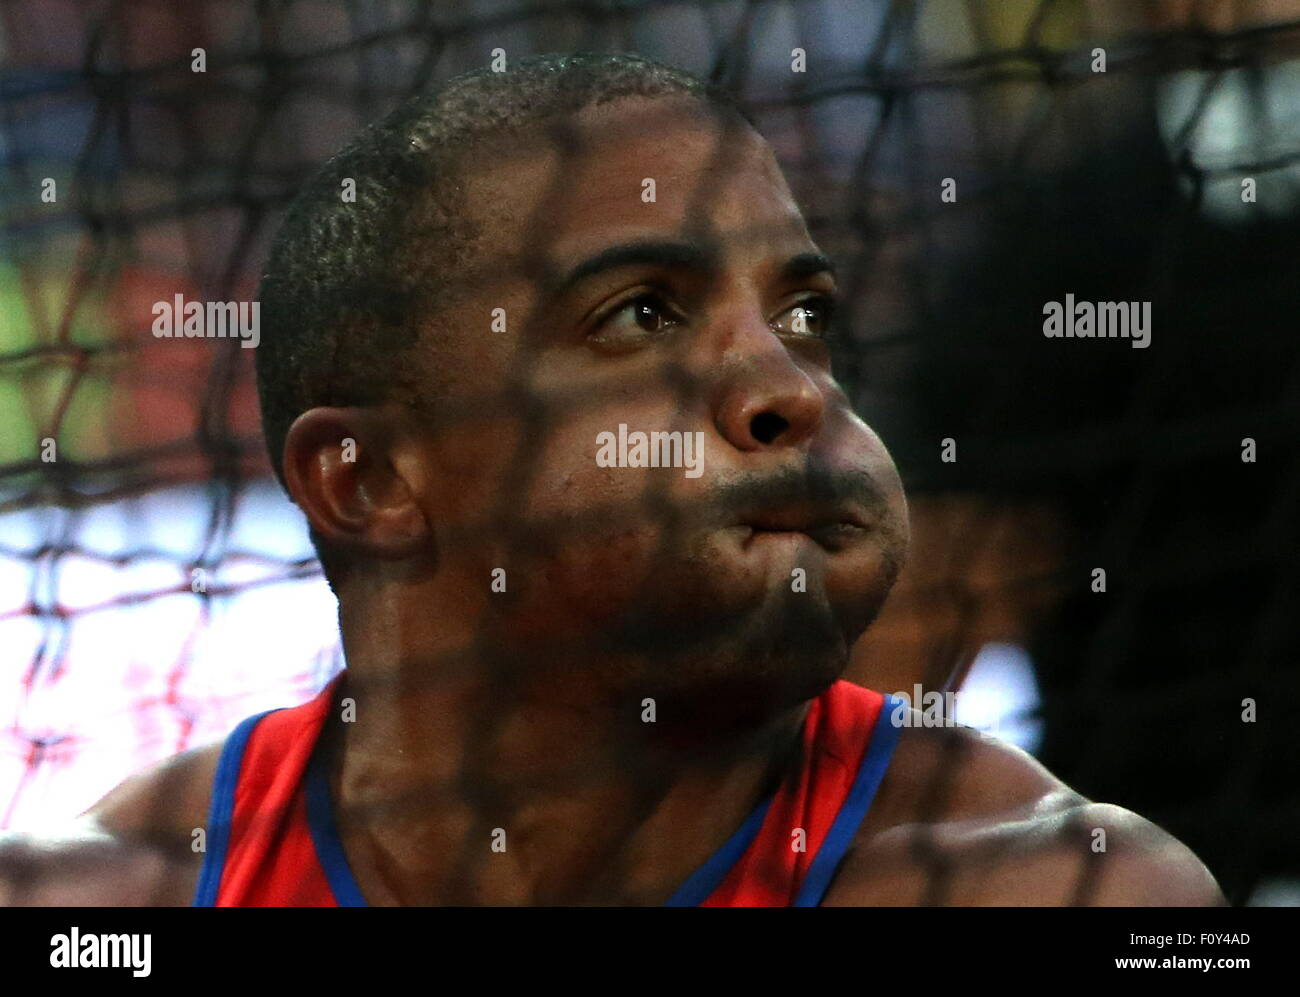 Beijing, China. 23rd Aug, 2015. Cuba's Roberto Janet competes in the men's hammer throw final on Day 2 of - Stock Image